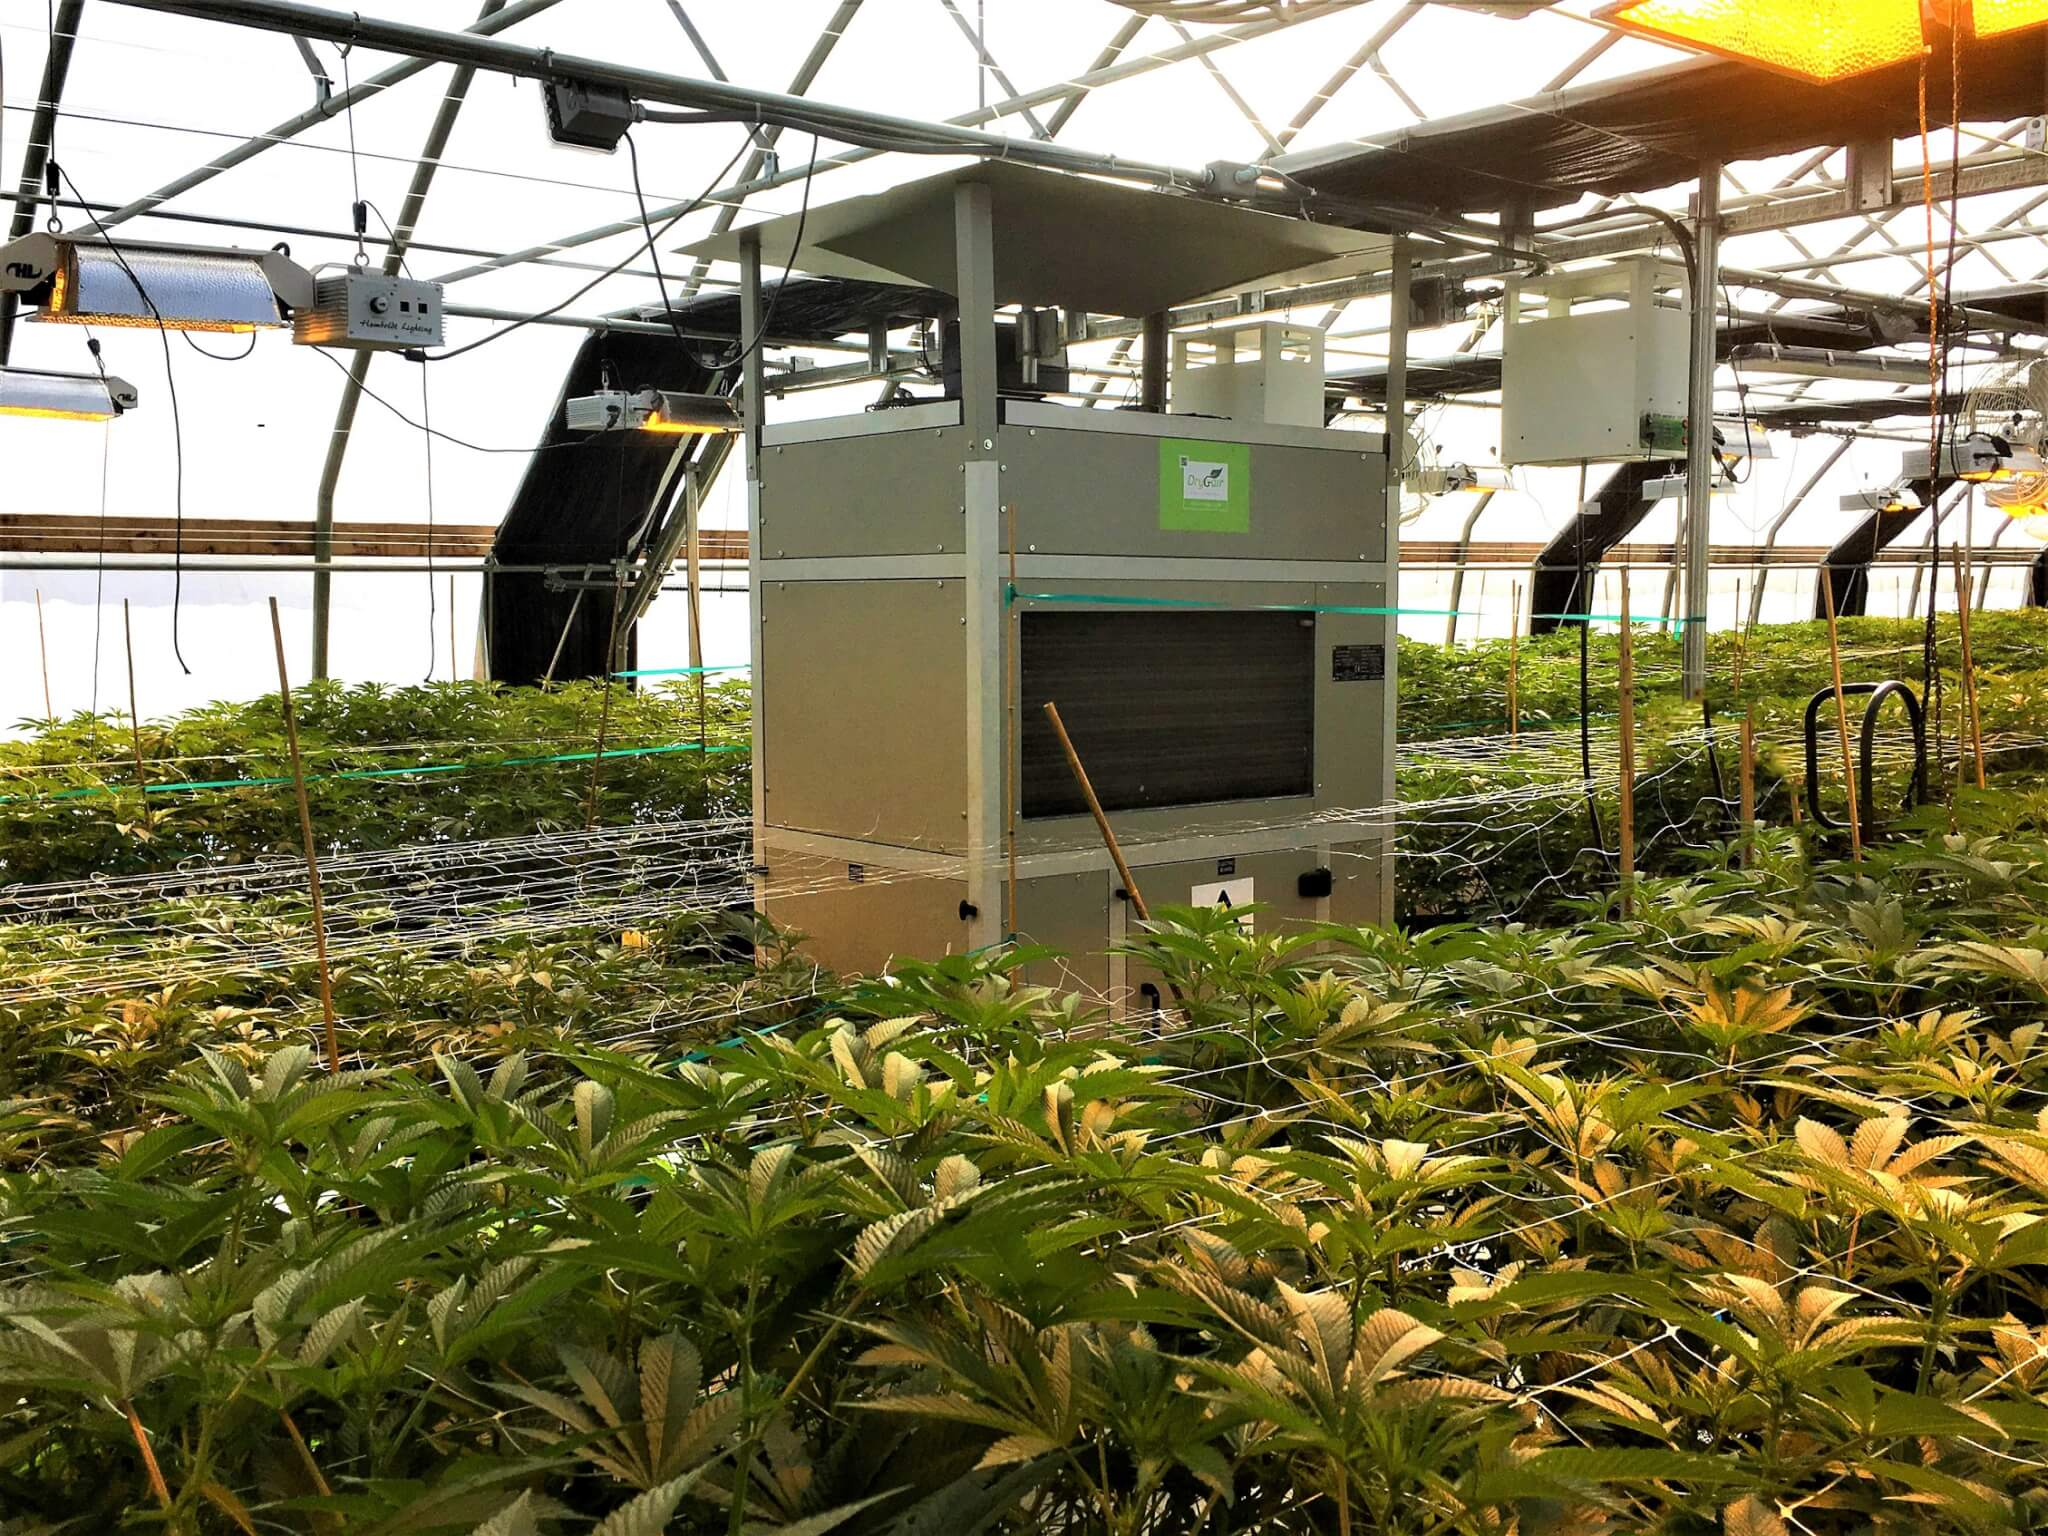 DG-3 in a Cannabis greenhouse